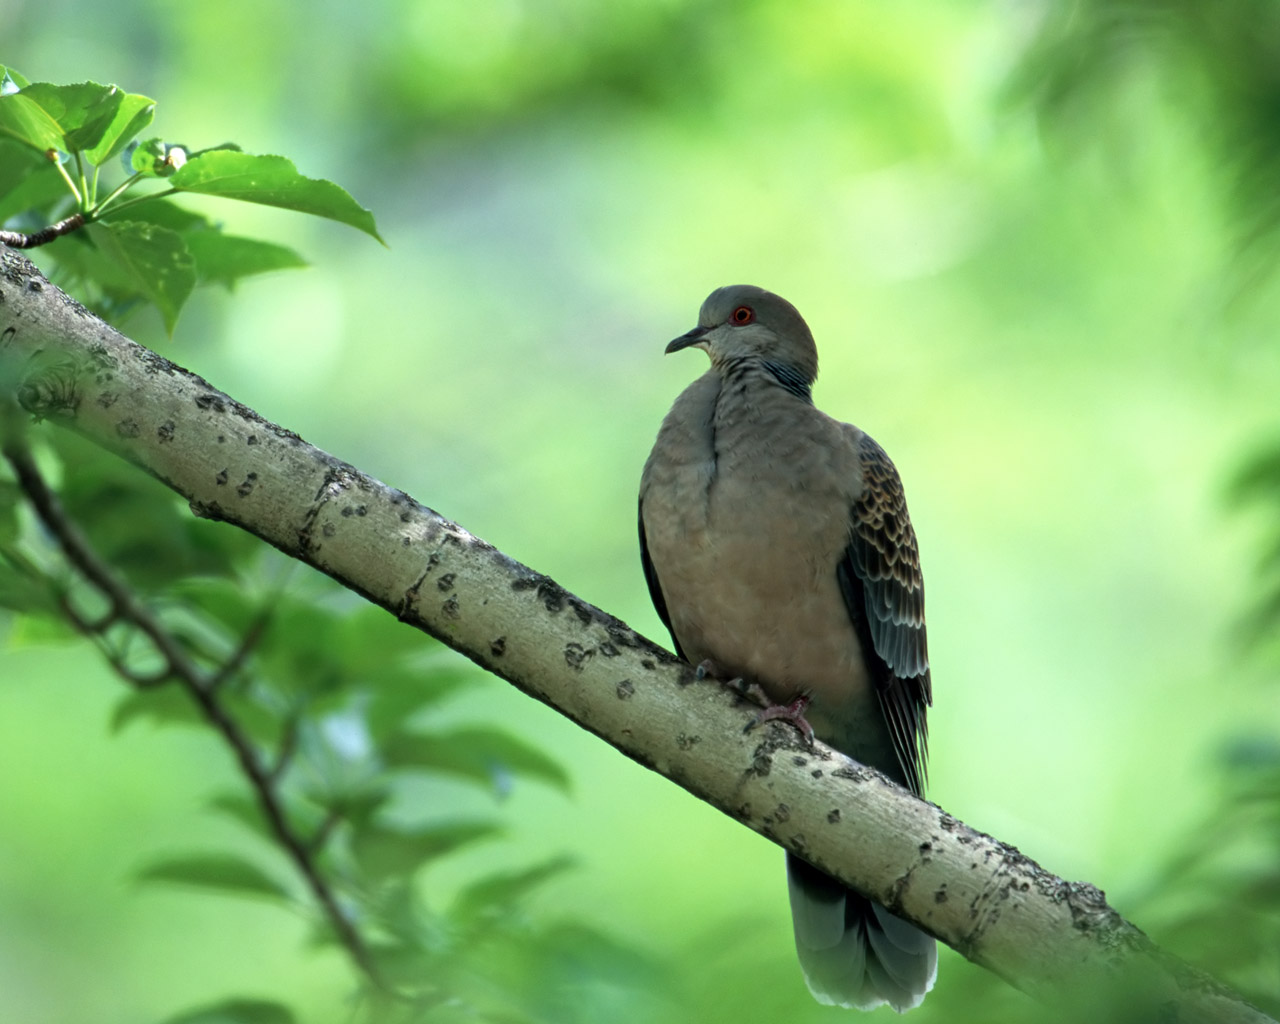 High-resolution pictures of birds 5426